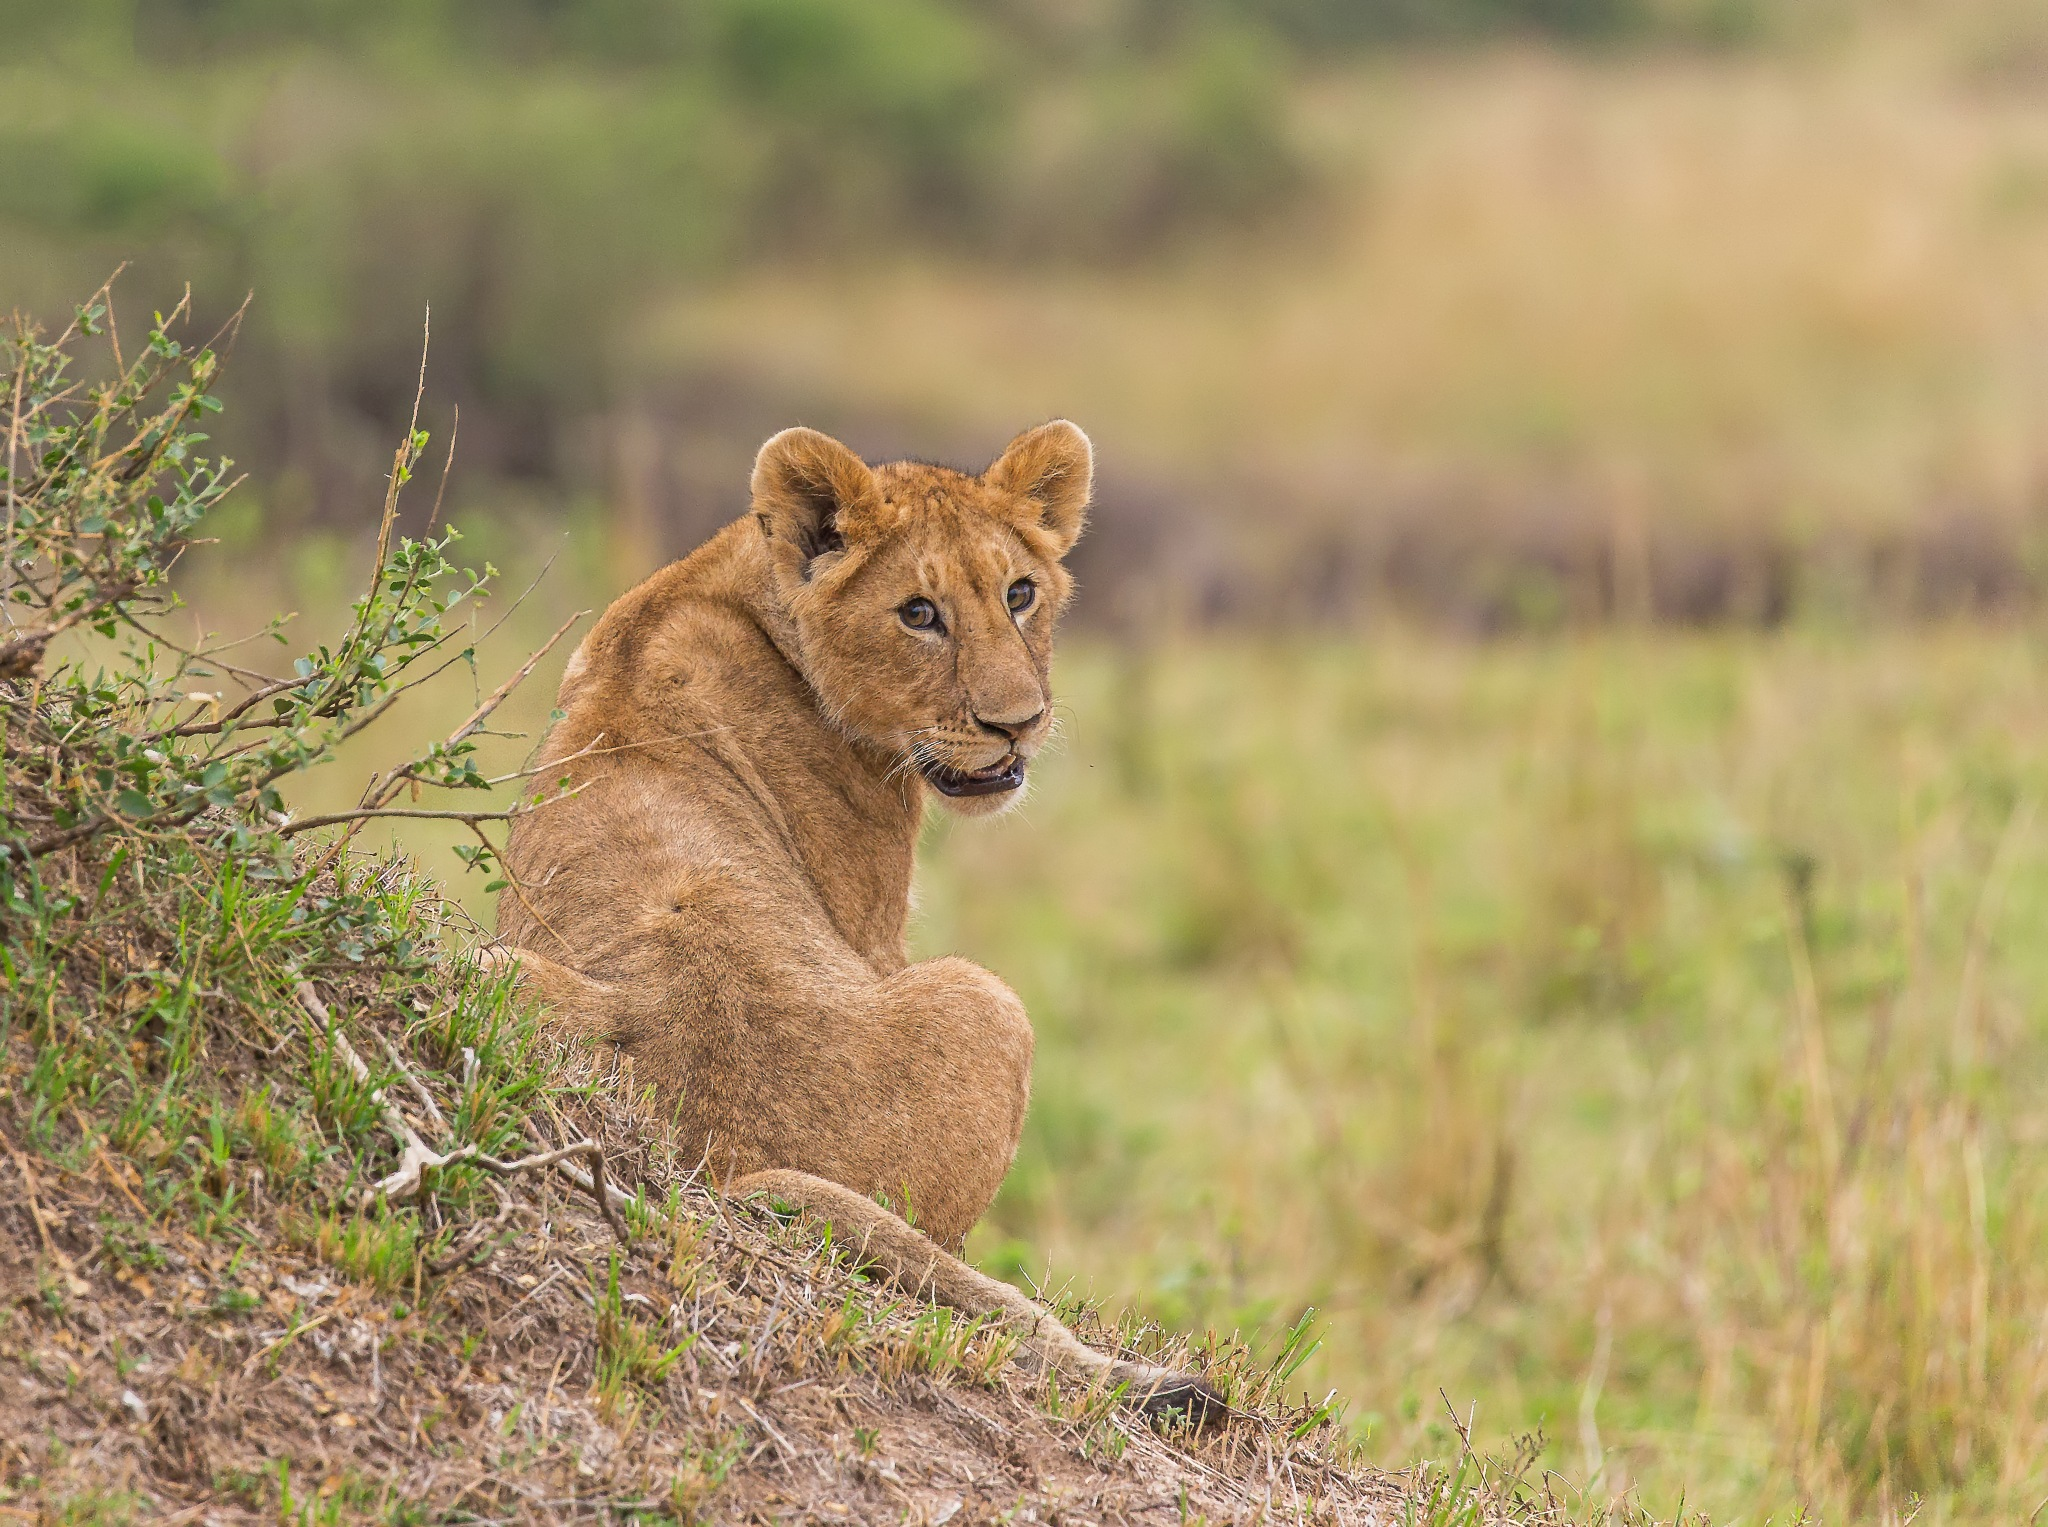 The curious one... by DrSudhir Hasamnis